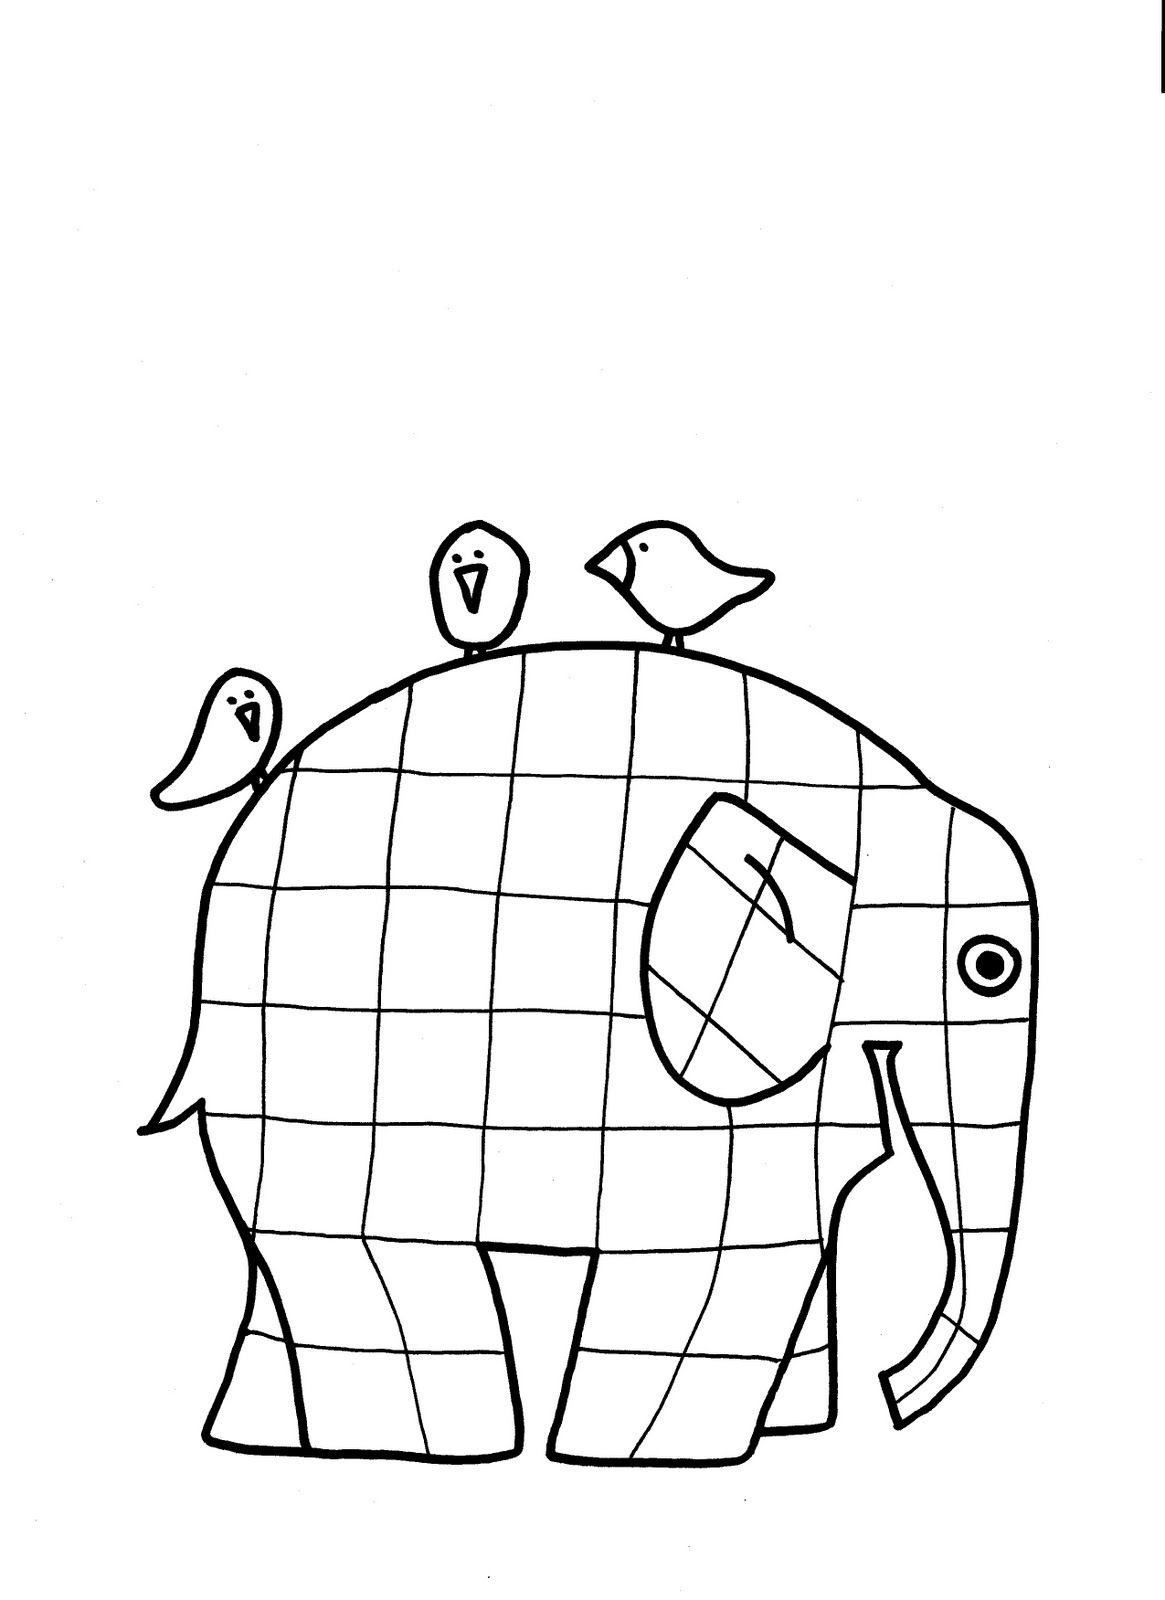 sponge painted elmer the elephant zoos activities and